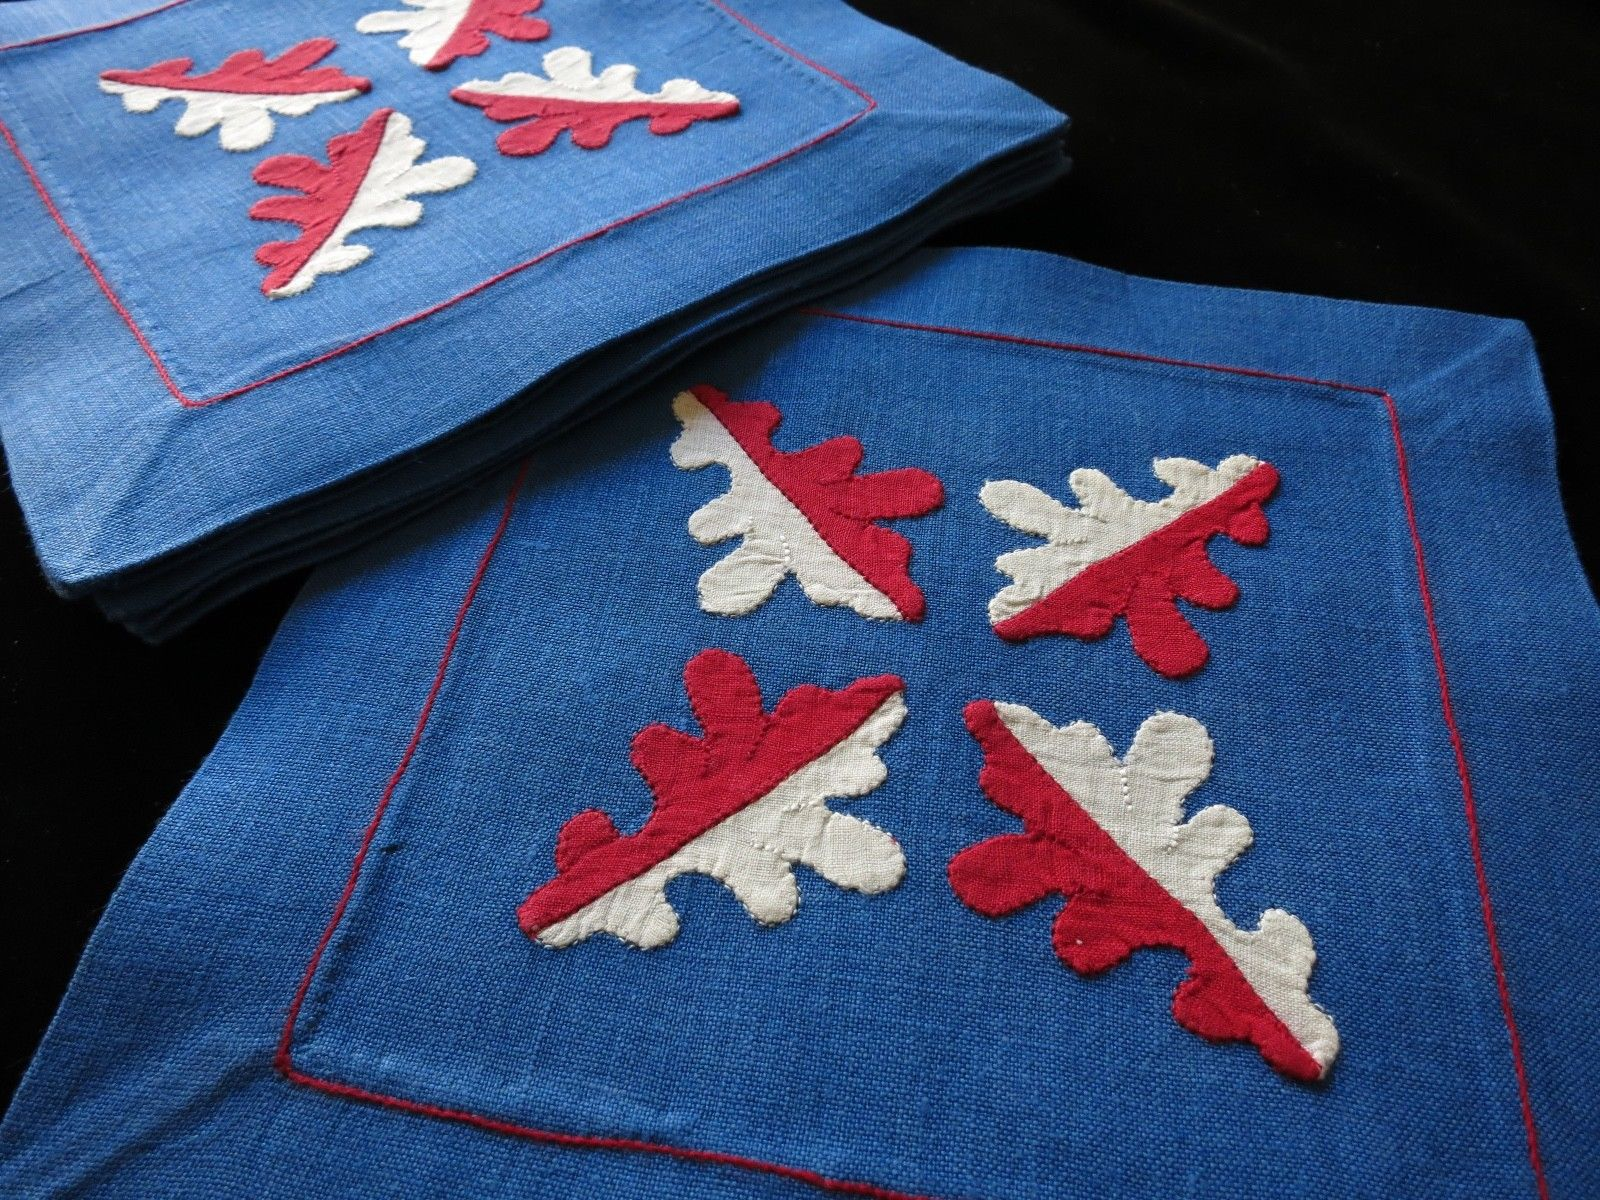 Oak Leaves Vintage Madeira Embroidery Linen Cocktail Napkins - Set of 8